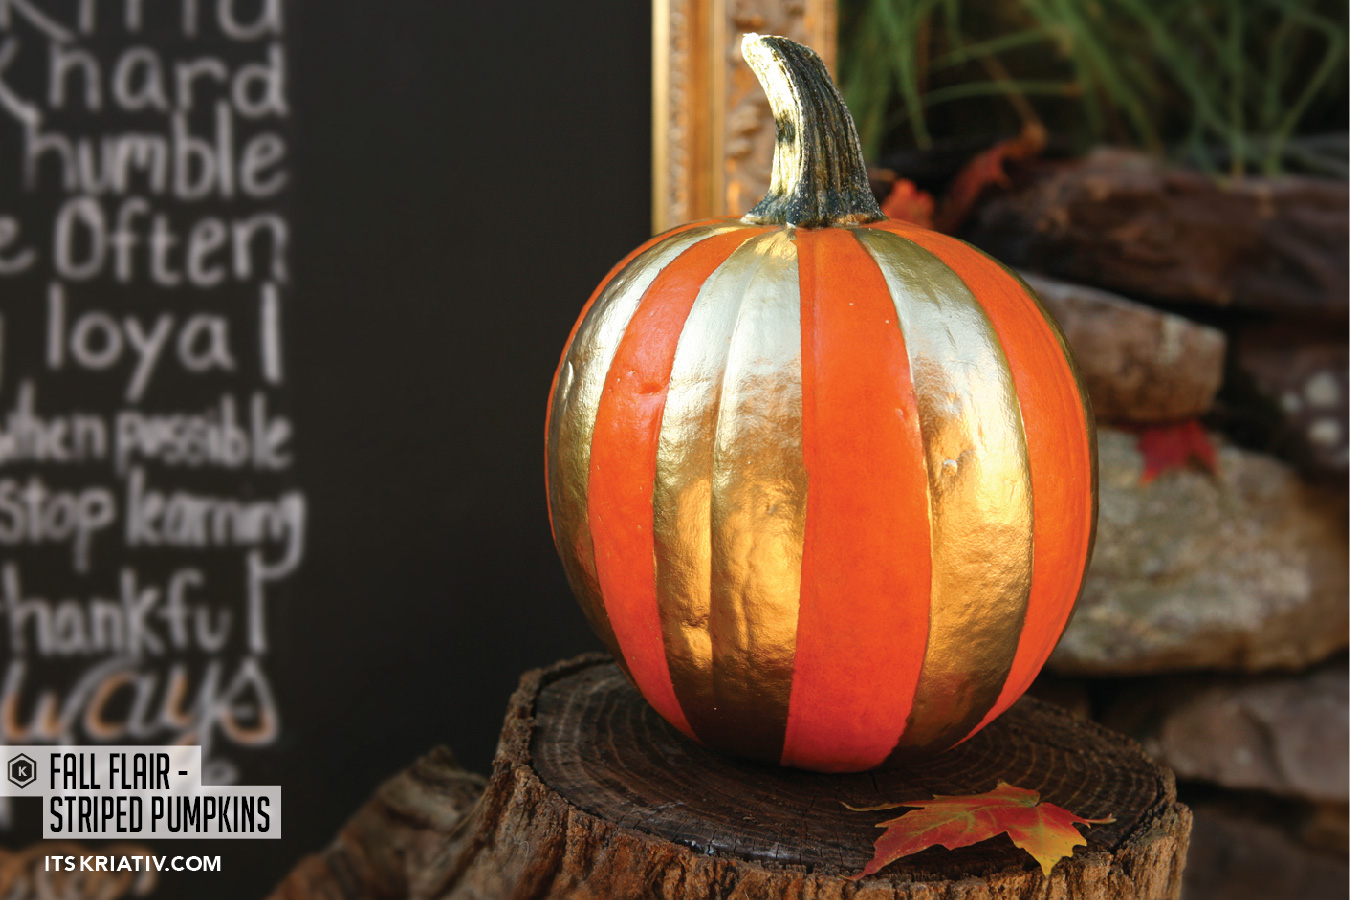 Oct_13_Decor-Gold-Striped-Pumpkin-01a-08.jpg